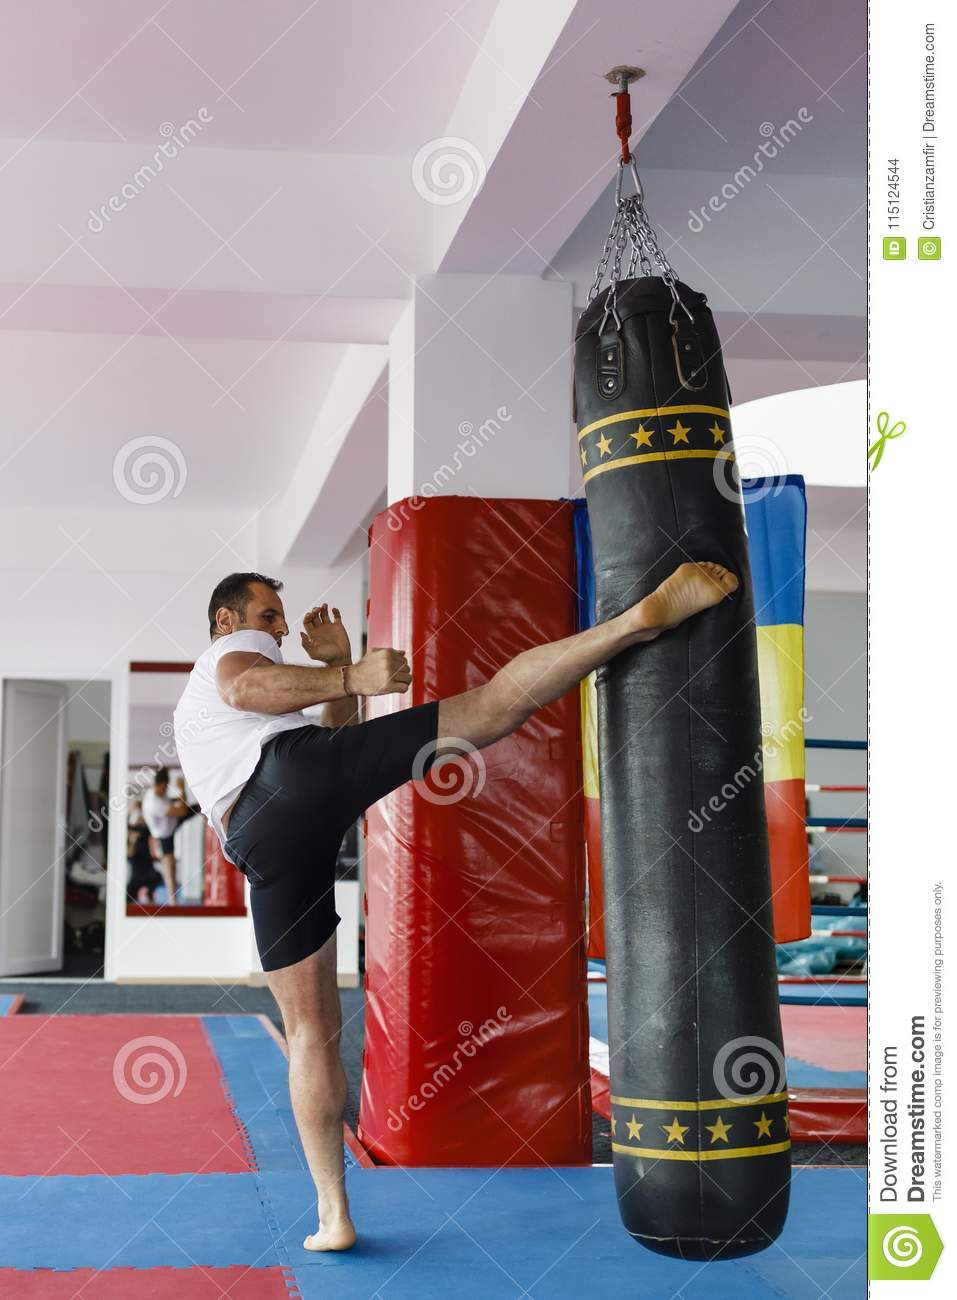 Kickbox fighter training in a gym with punch bags, see the whole